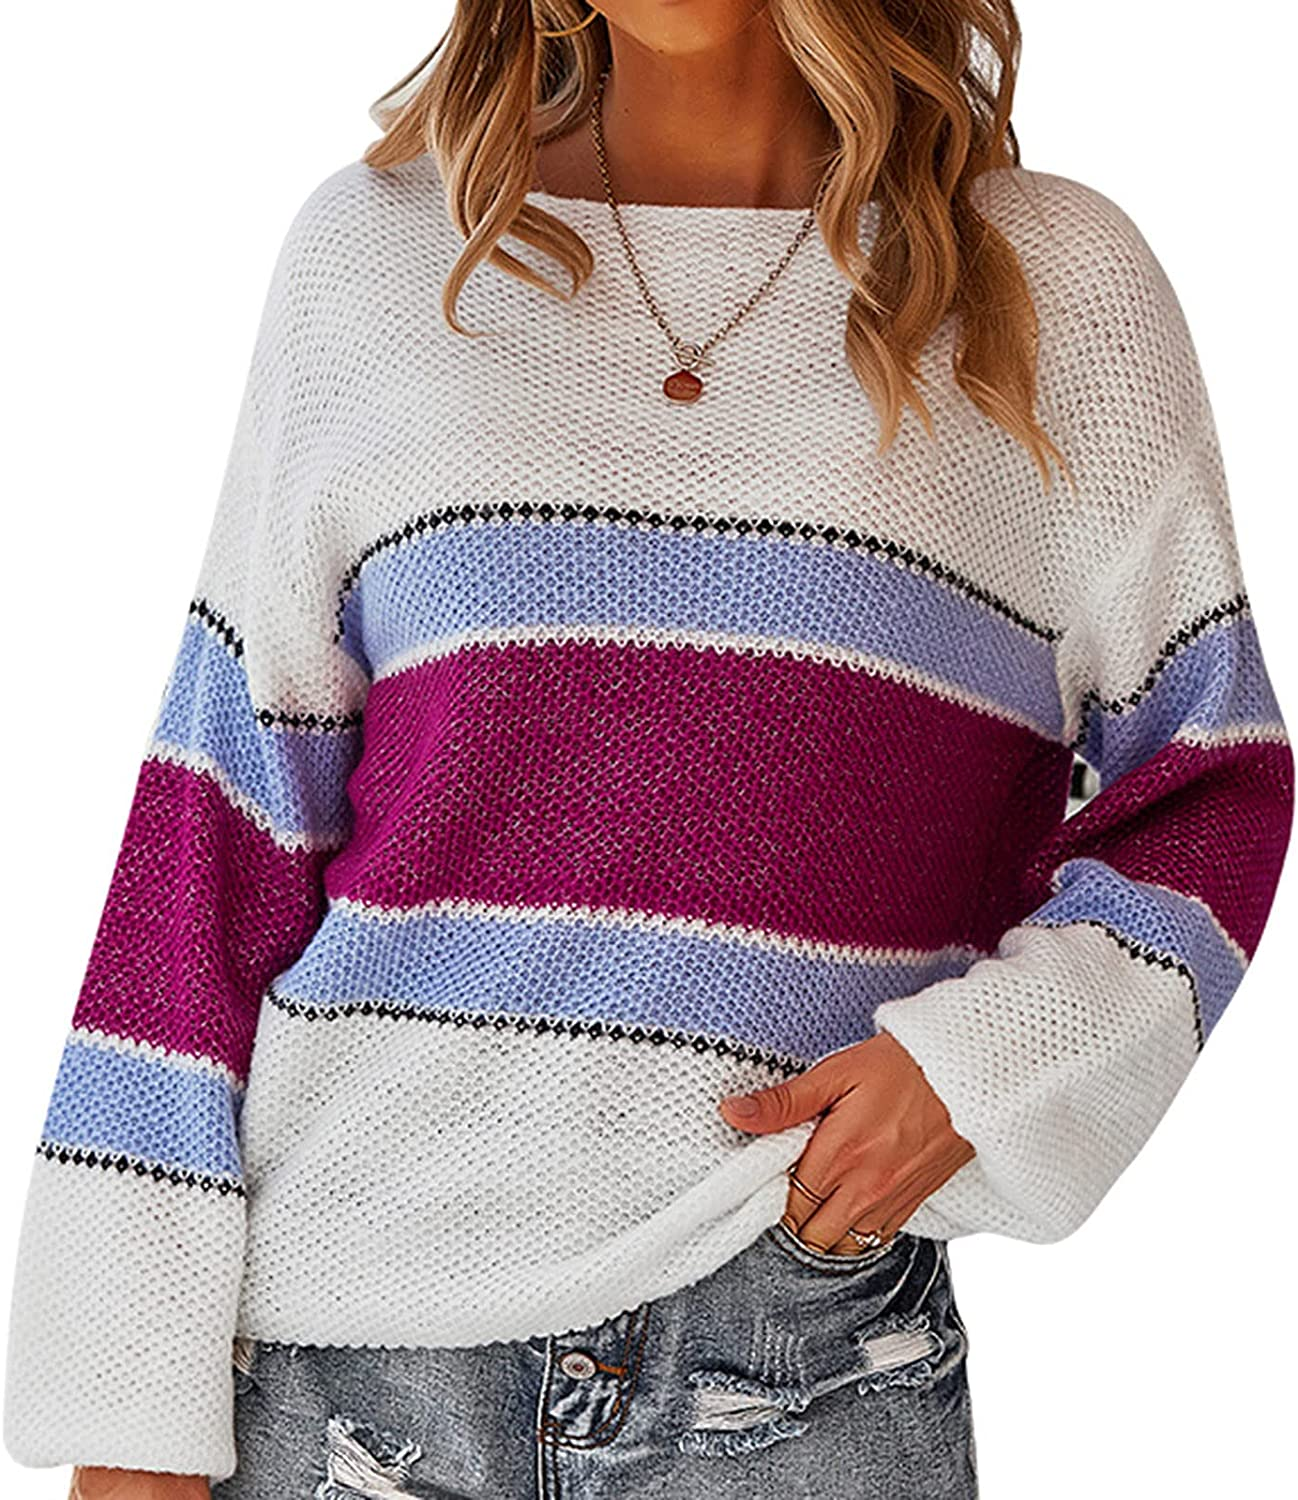 Women's Pullover Sweater Batwing Long Sleeve Casual Loose Oversized Color Block Striped Patchwork Knit Sweater Jumper Tops